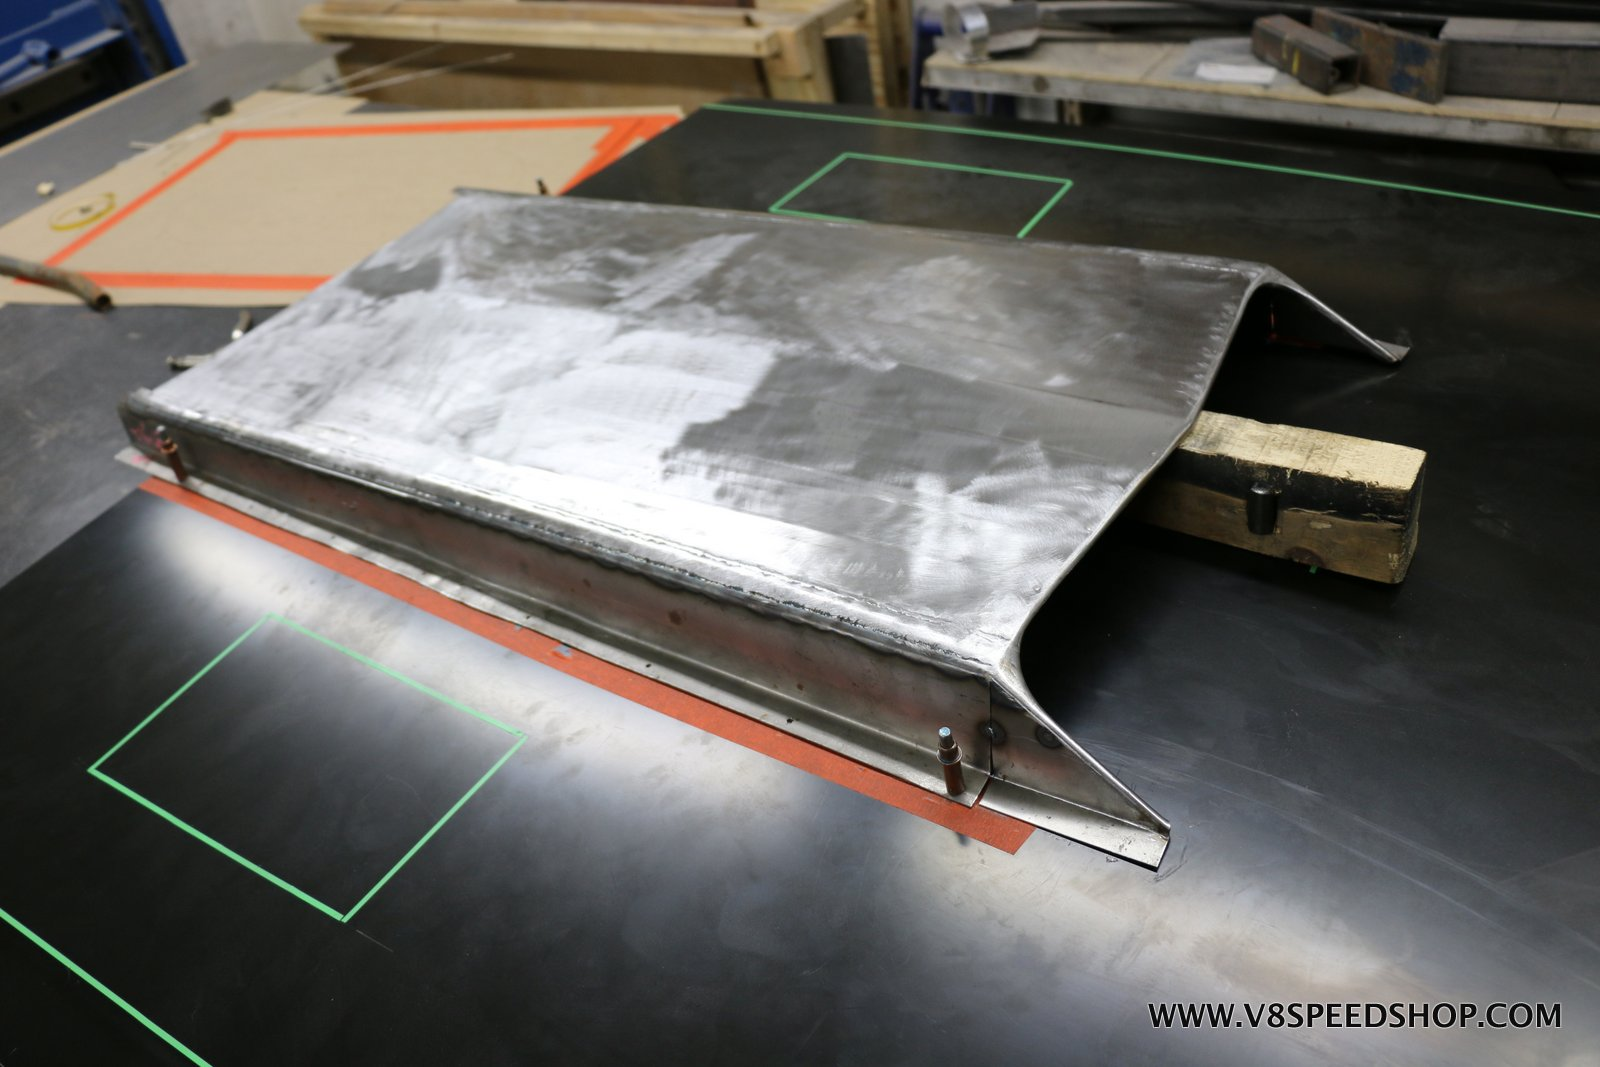 1967 Ford Mustang Custom Steel Hood Fabrication Photo Gallery